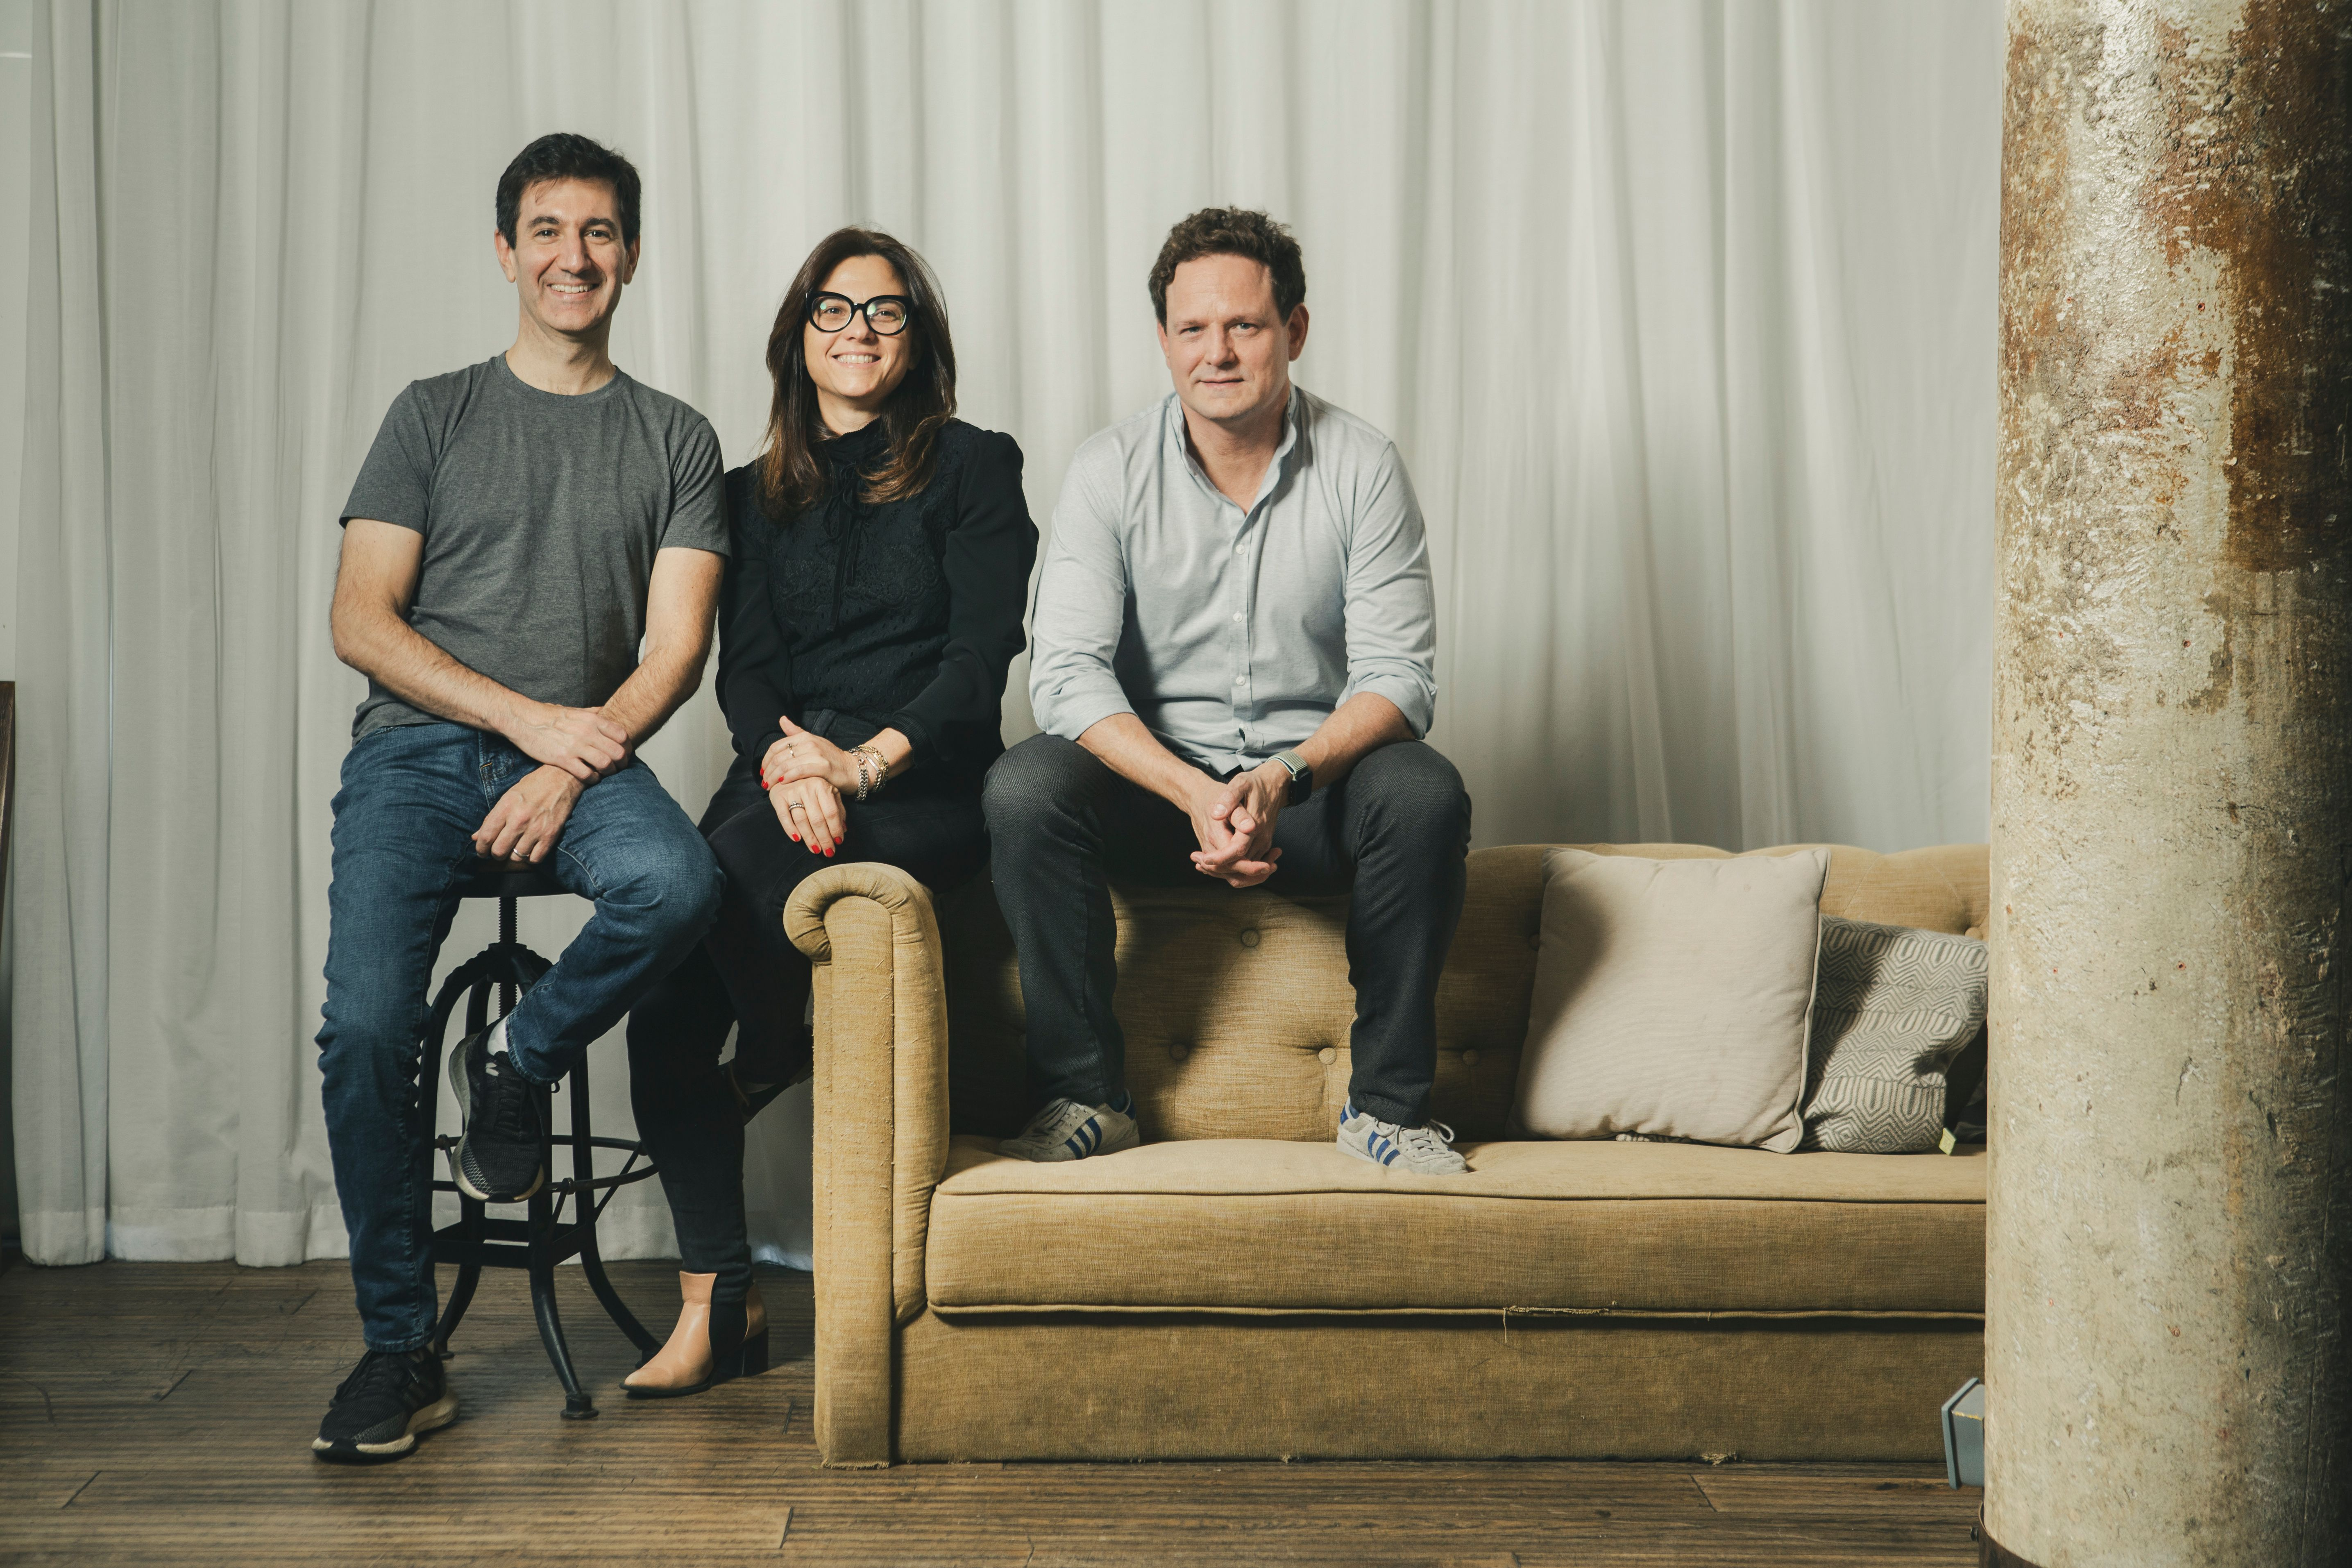 Scot Galit, Payoneer CEO (L), Keren Levy, COO at Payoneer (M) and Daniel Smeds, CEO of optile, recently acquired by Payoneer. (L)